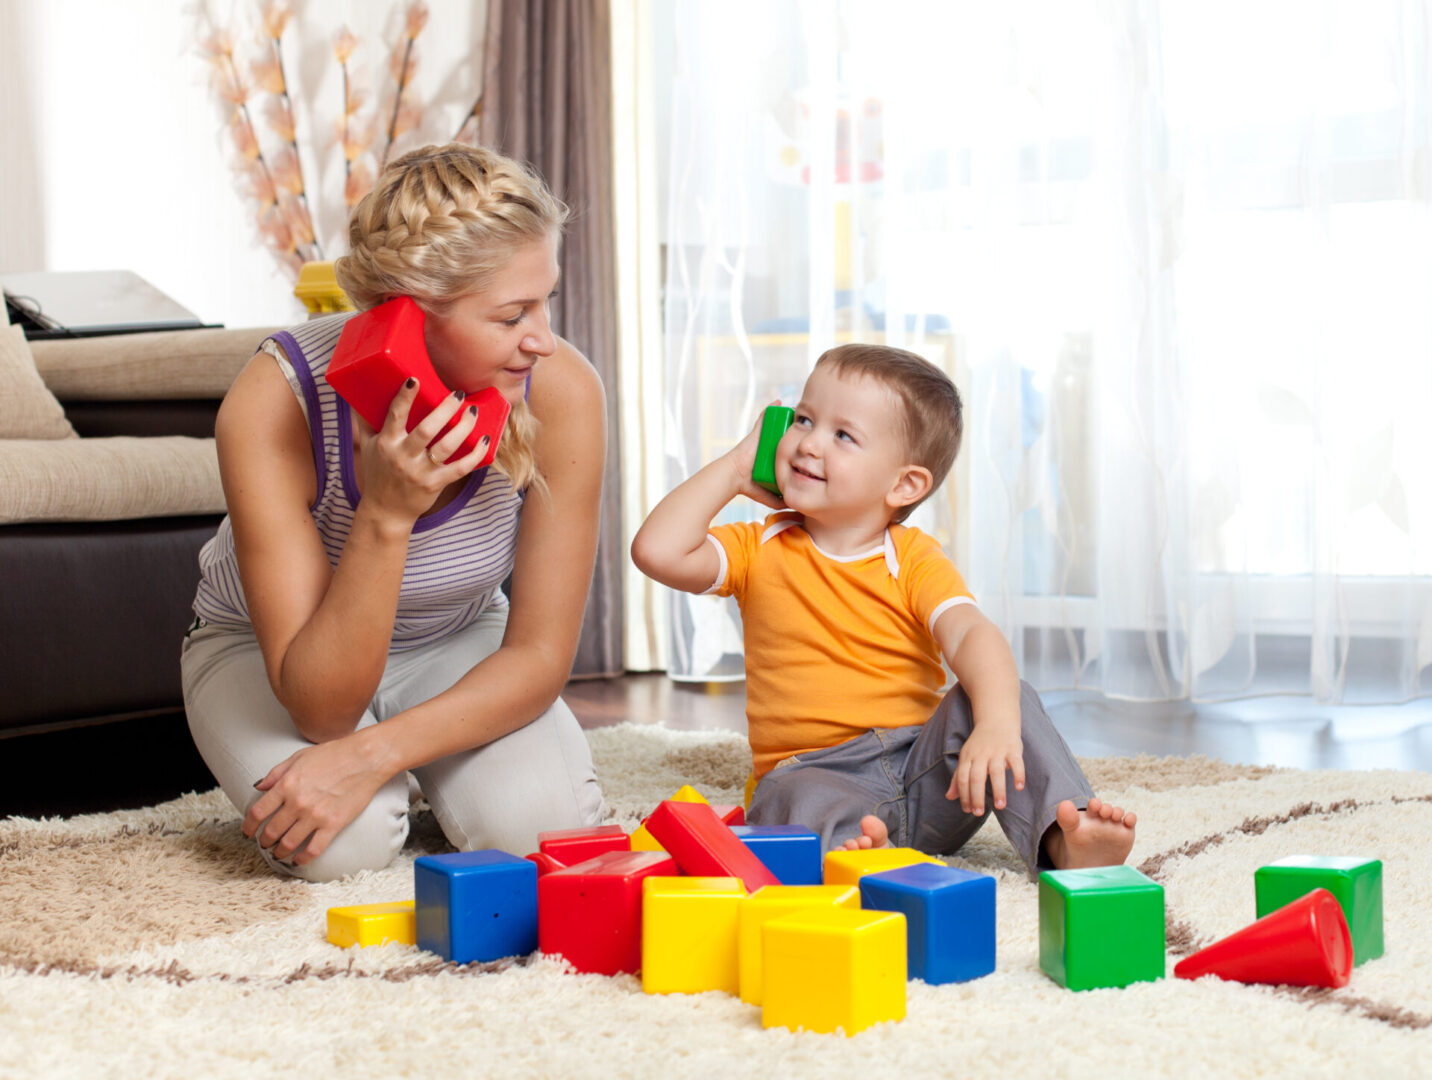 cute mother and kid boy playing together indoor